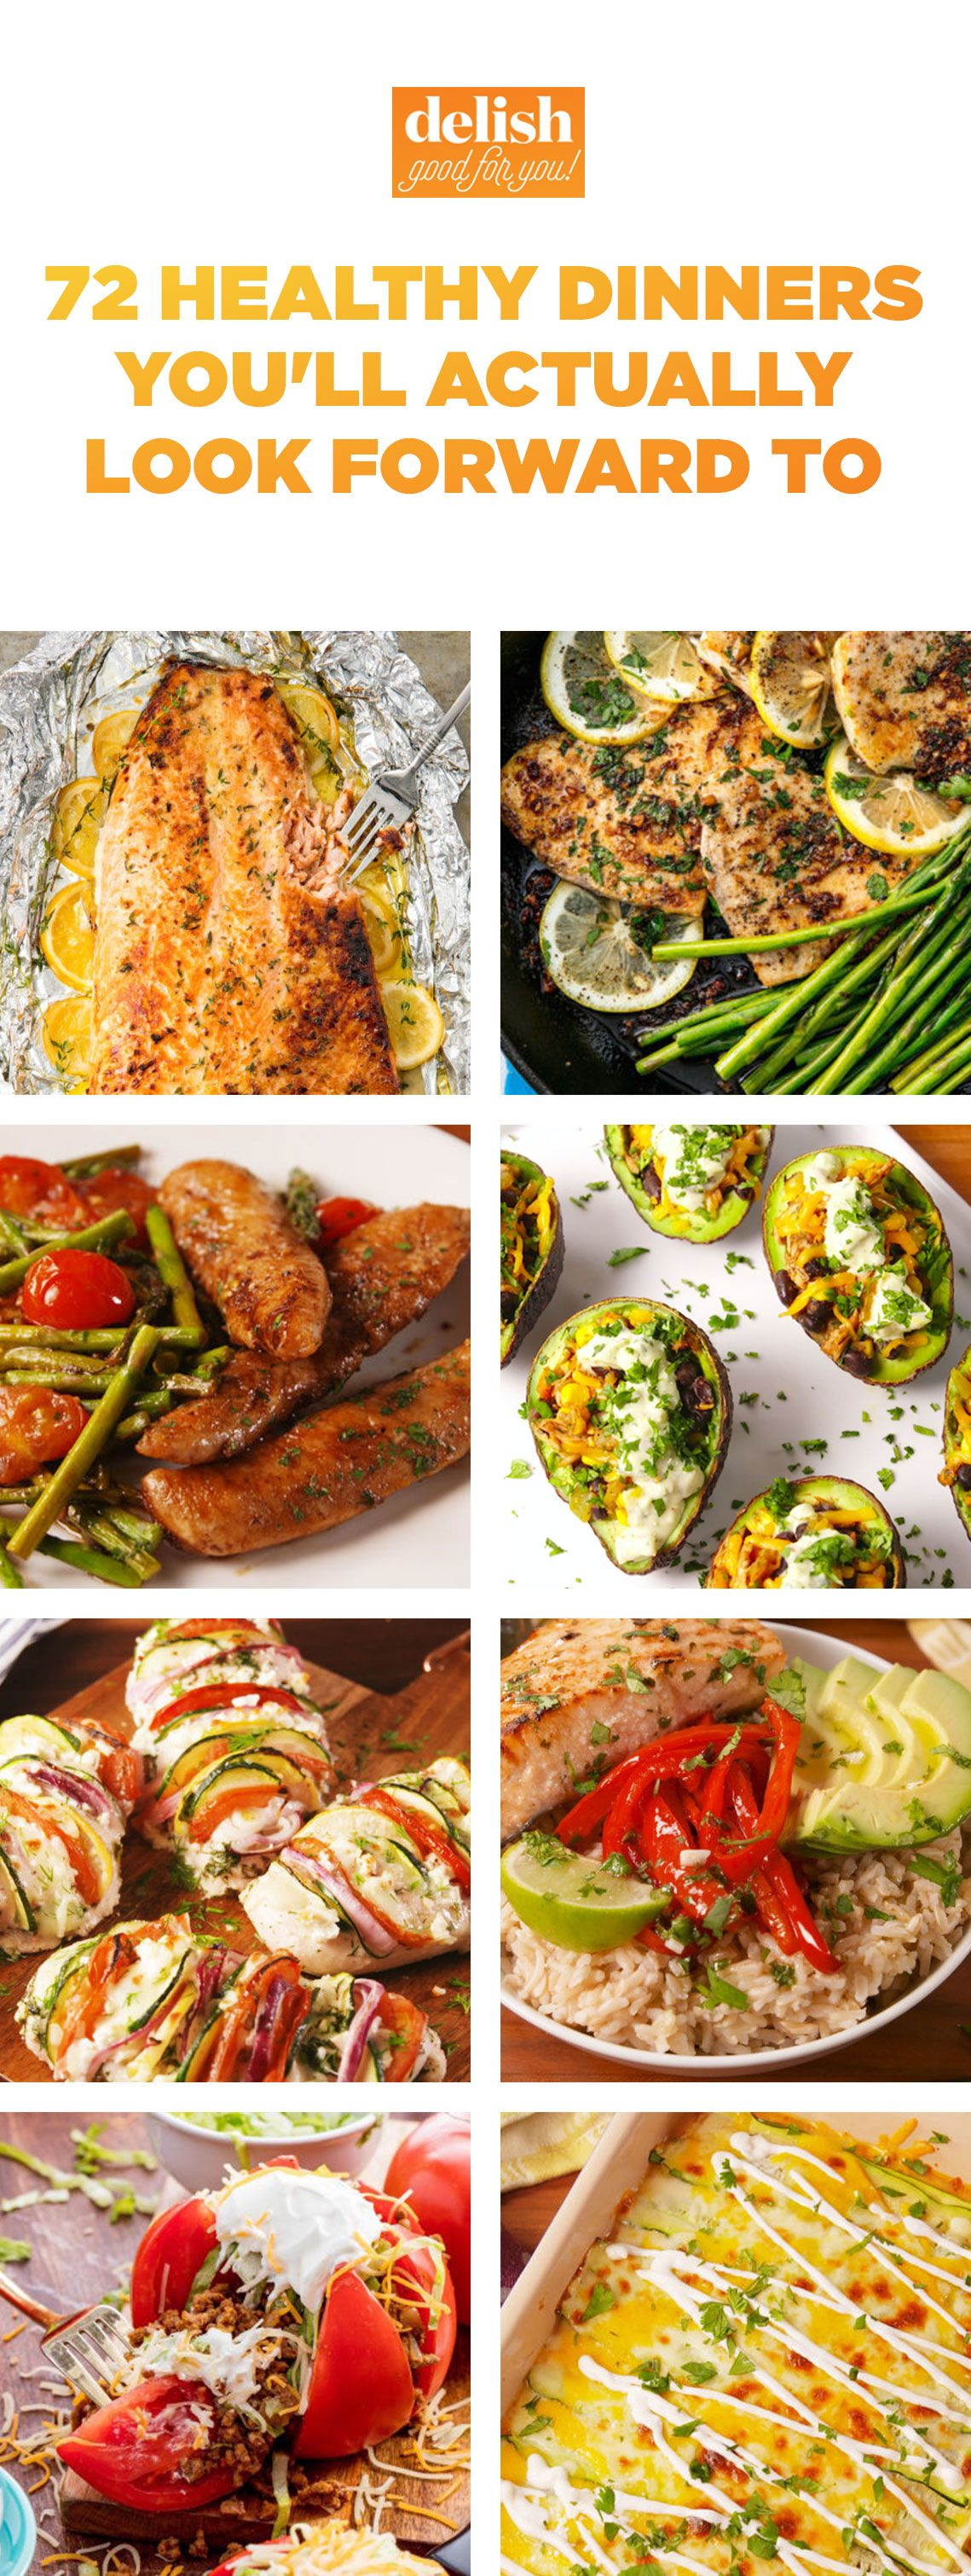 80 easy healthy dinner ideas best recipes for healthy dinners 80 easy healthy dinner ideas best recipes for healthy dinnersdelish forumfinder Gallery